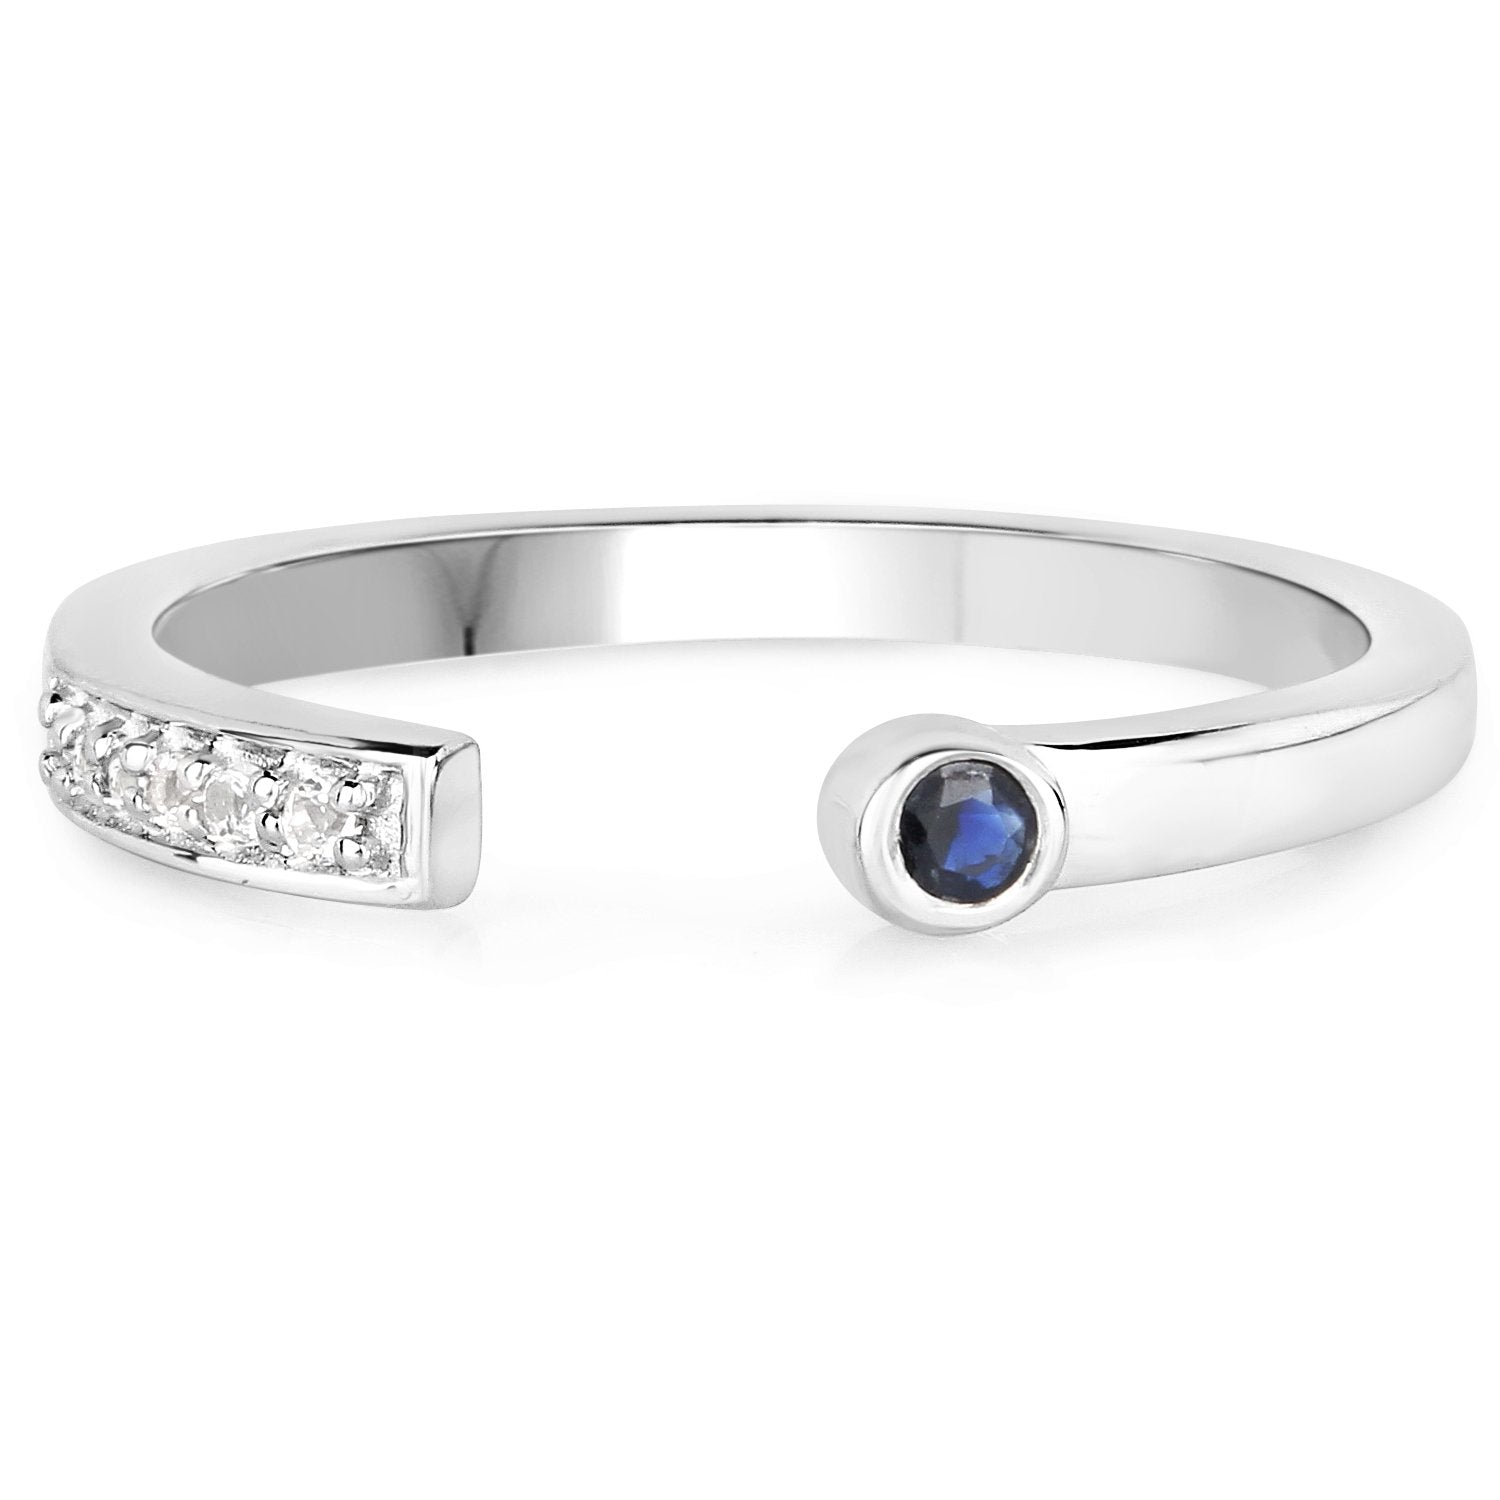 LoveHuang 0.08 Carats Genuine Blue Sapphire and White Topaz Stacking Ring Solid .925 Sterling Silver With Rhodium Plating